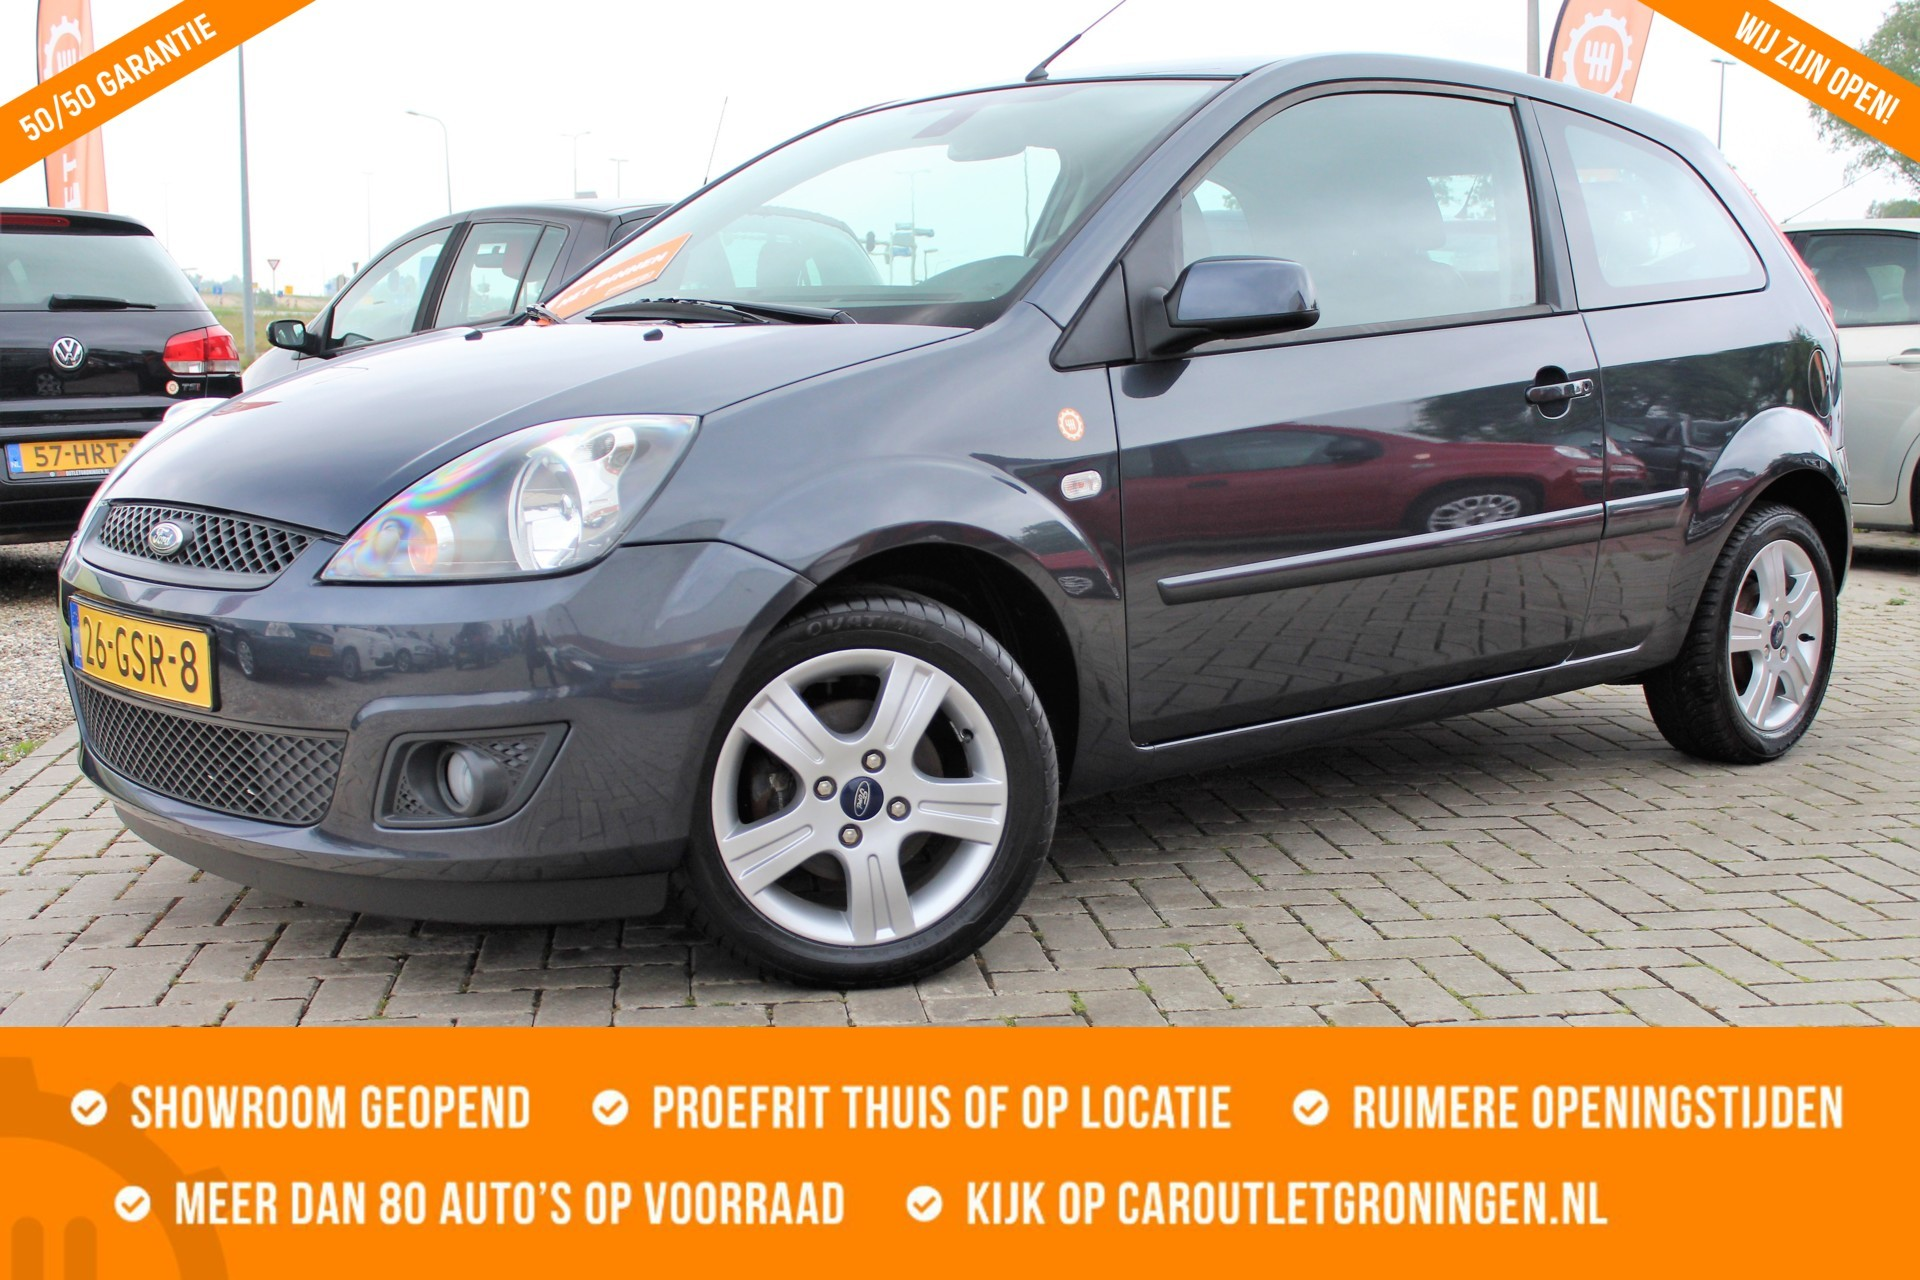 Caroutlet Groningen - Ford Fiesta 1.3-8V Futura XL | PDC | CLIMA | CRUISE | 2008